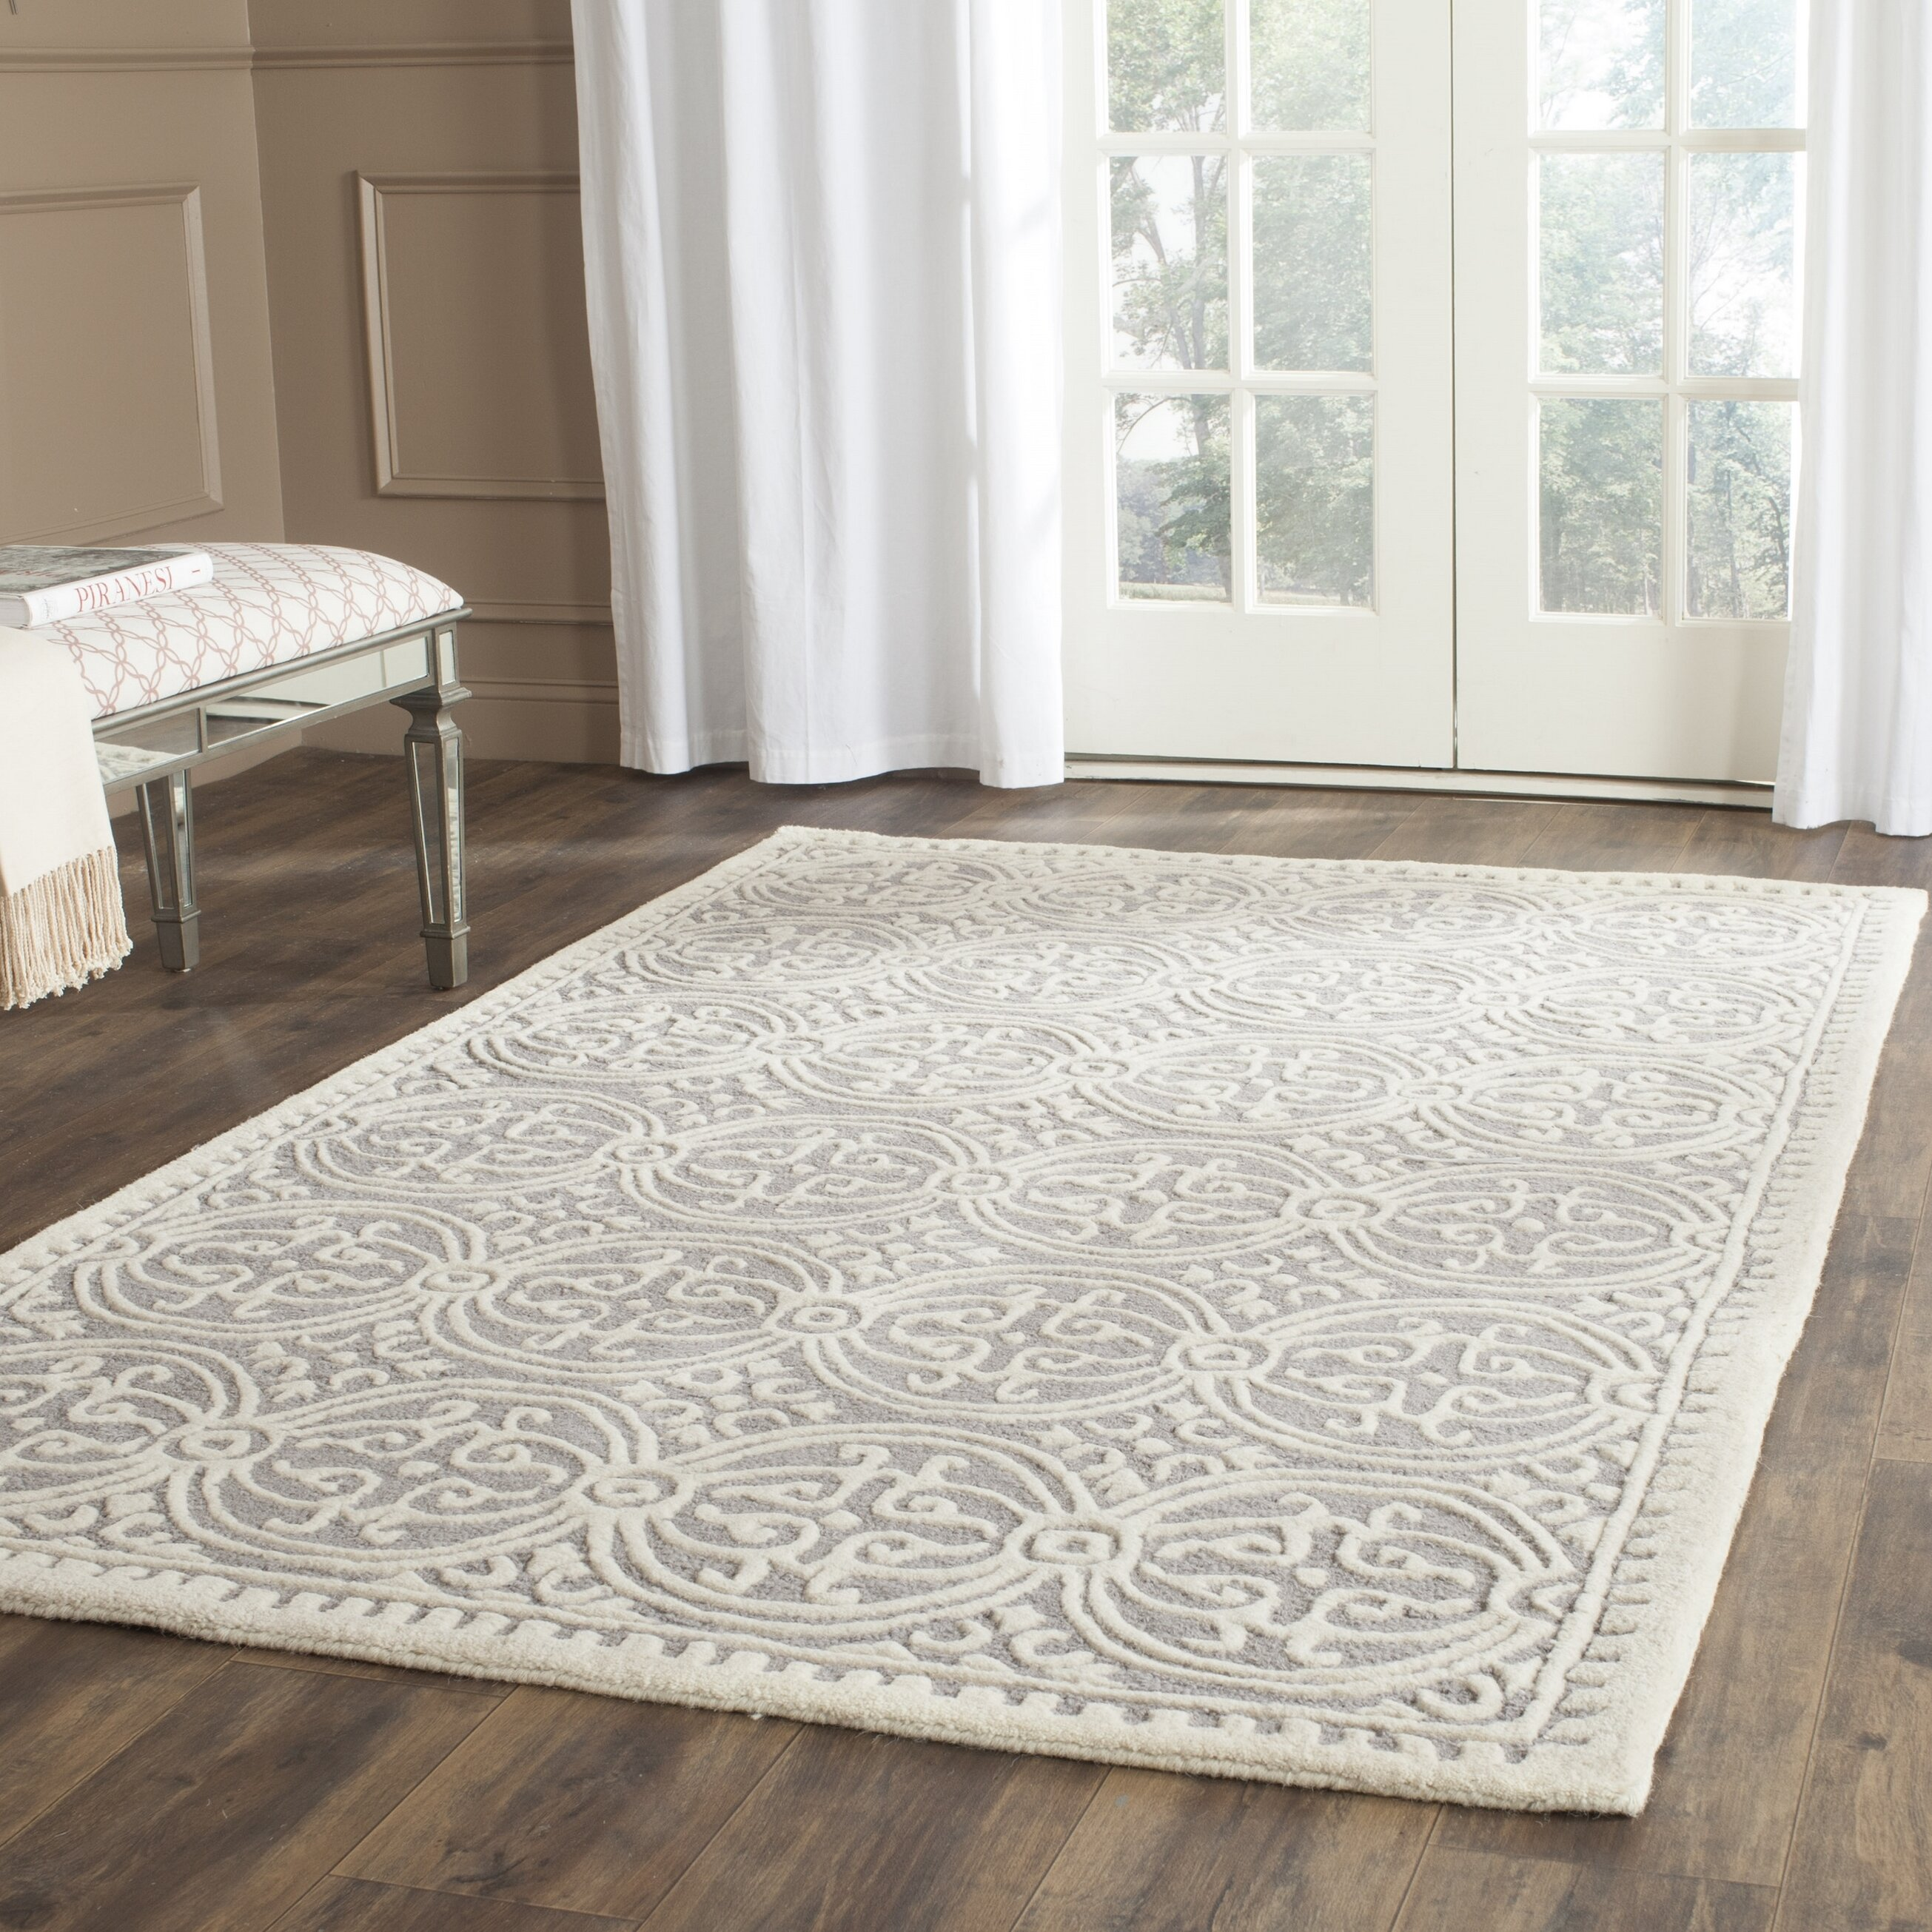 8 215 10 8x10 Area Rugs Gray Rug Ideas